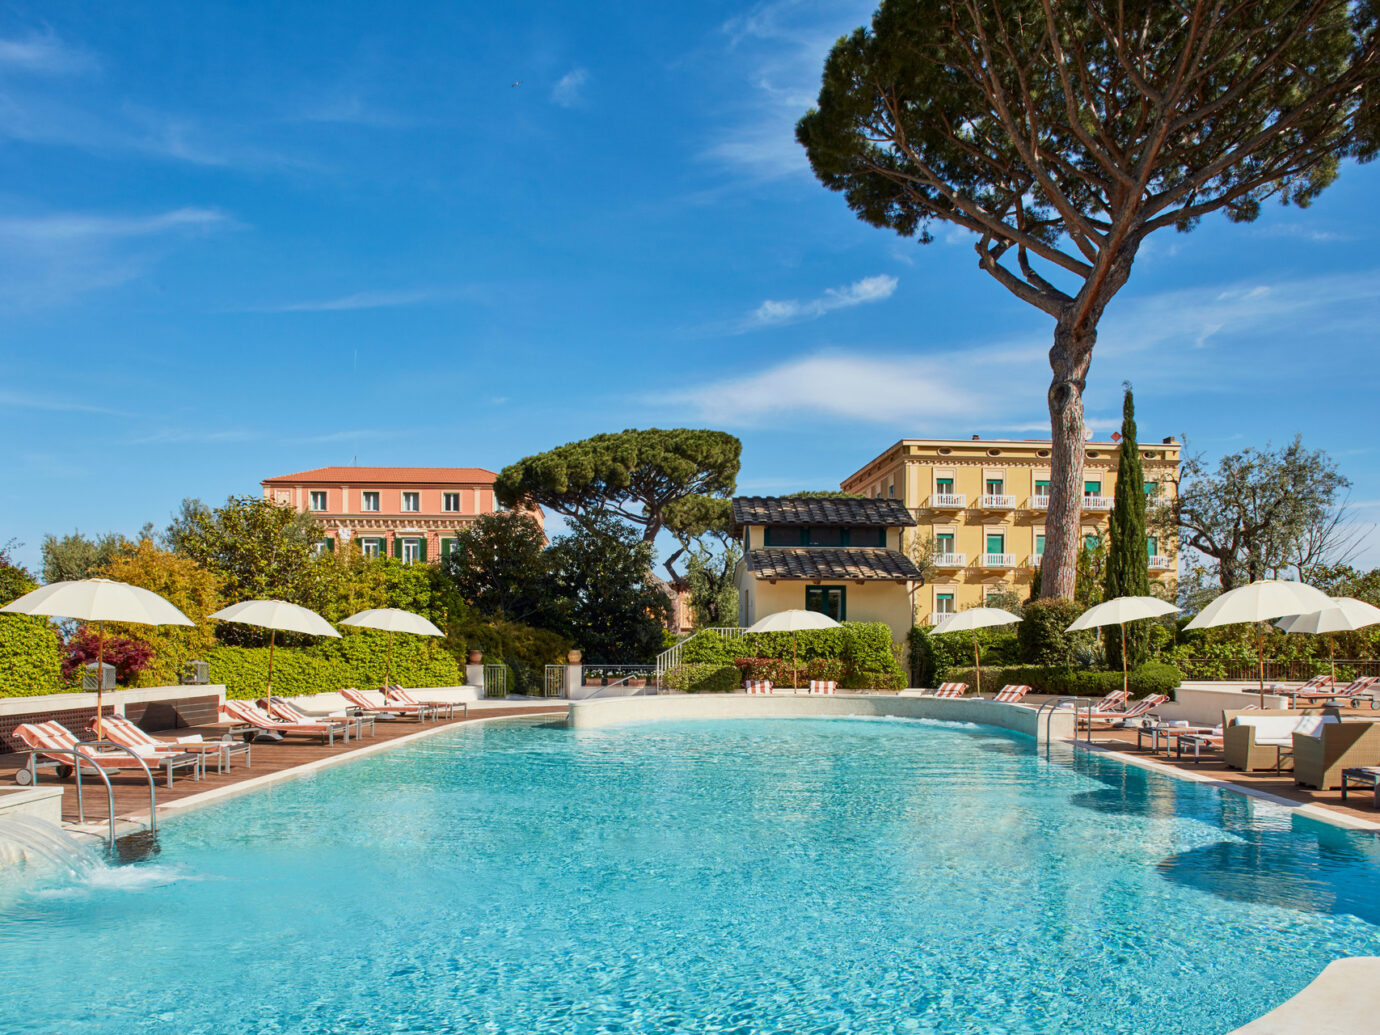 Pool at Grand Hotel Excelsior Vittoria